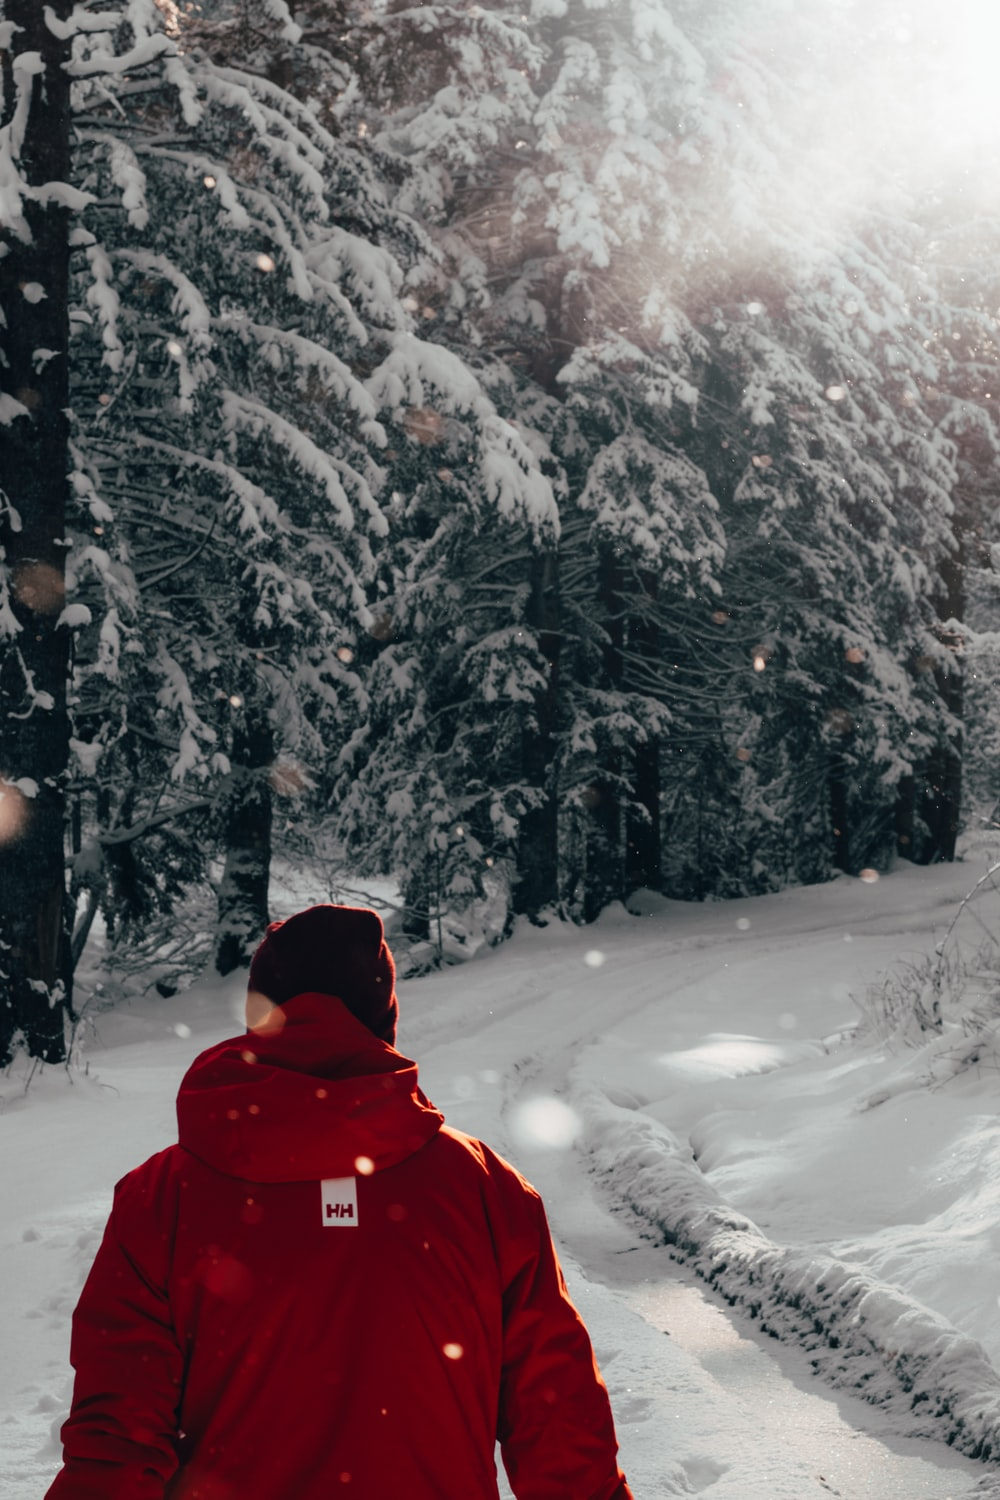 person wearing hooded jacket on snowfield near trees during day